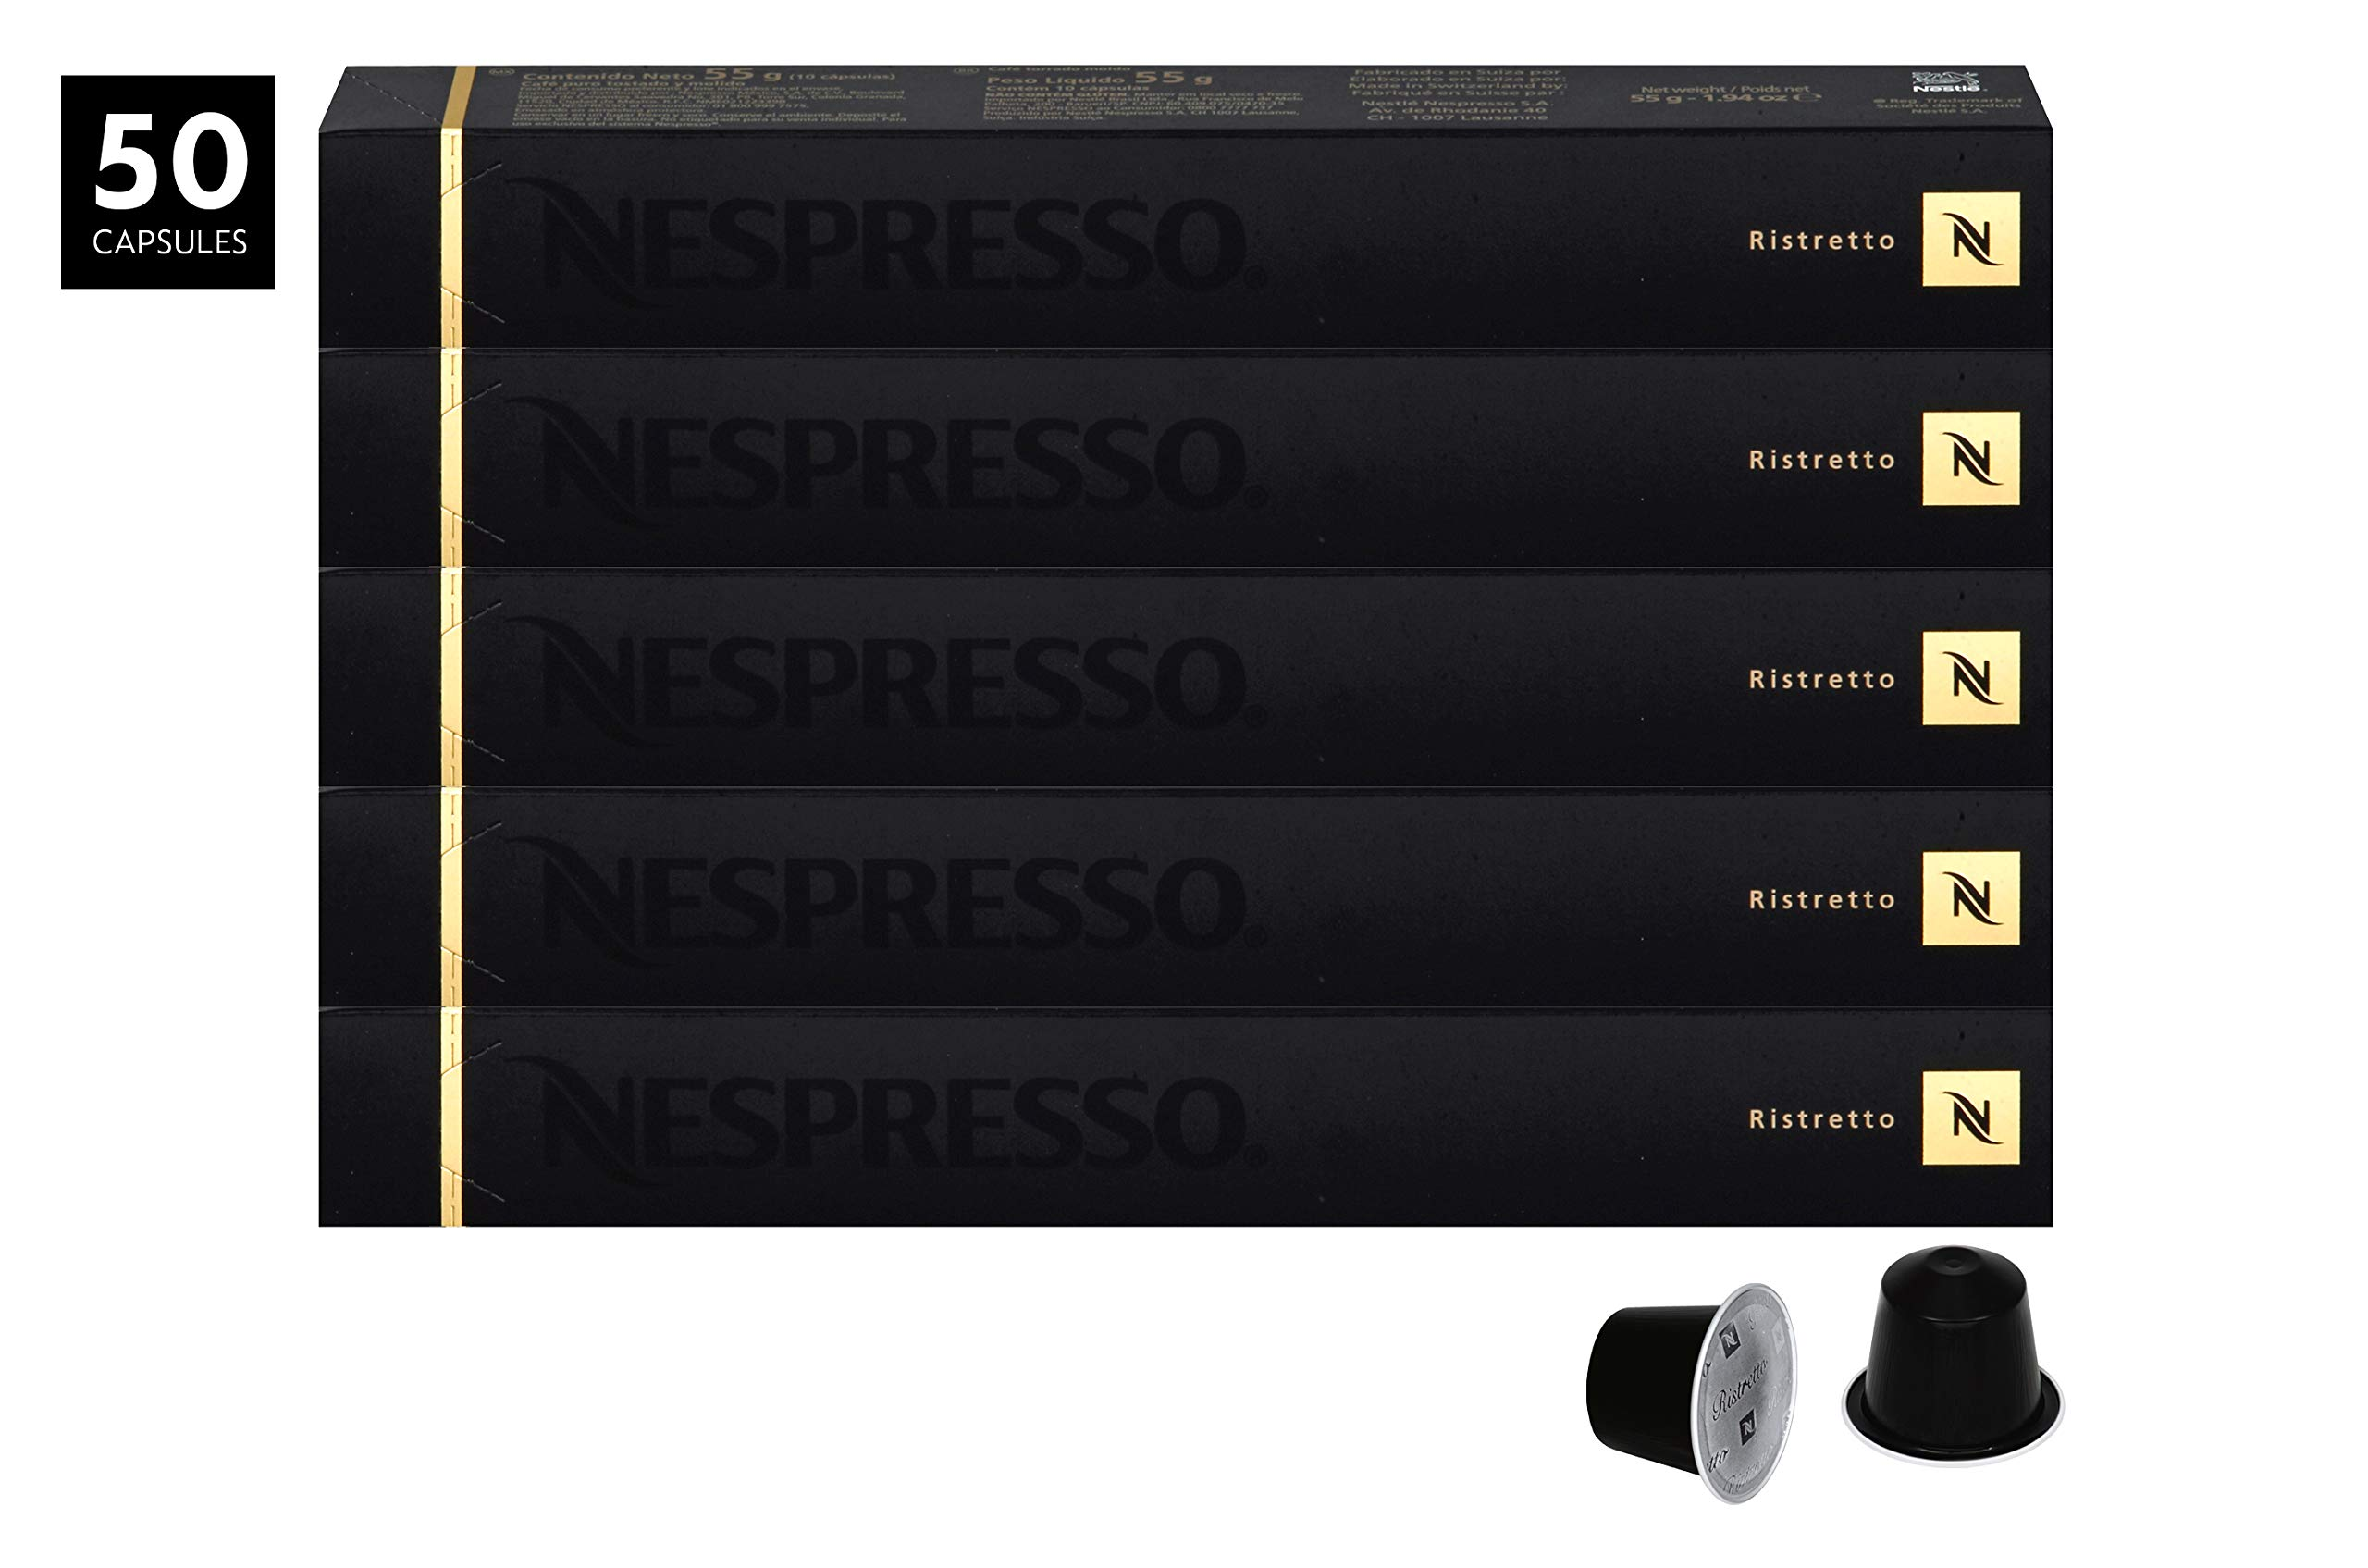 Nespresso Ristretto OriginalLine Capsules, 50 Count Espresso Pods, Intensity 10 Blend, Strong Roast South American & East African Arabica Coffee Flavors by Nespresso